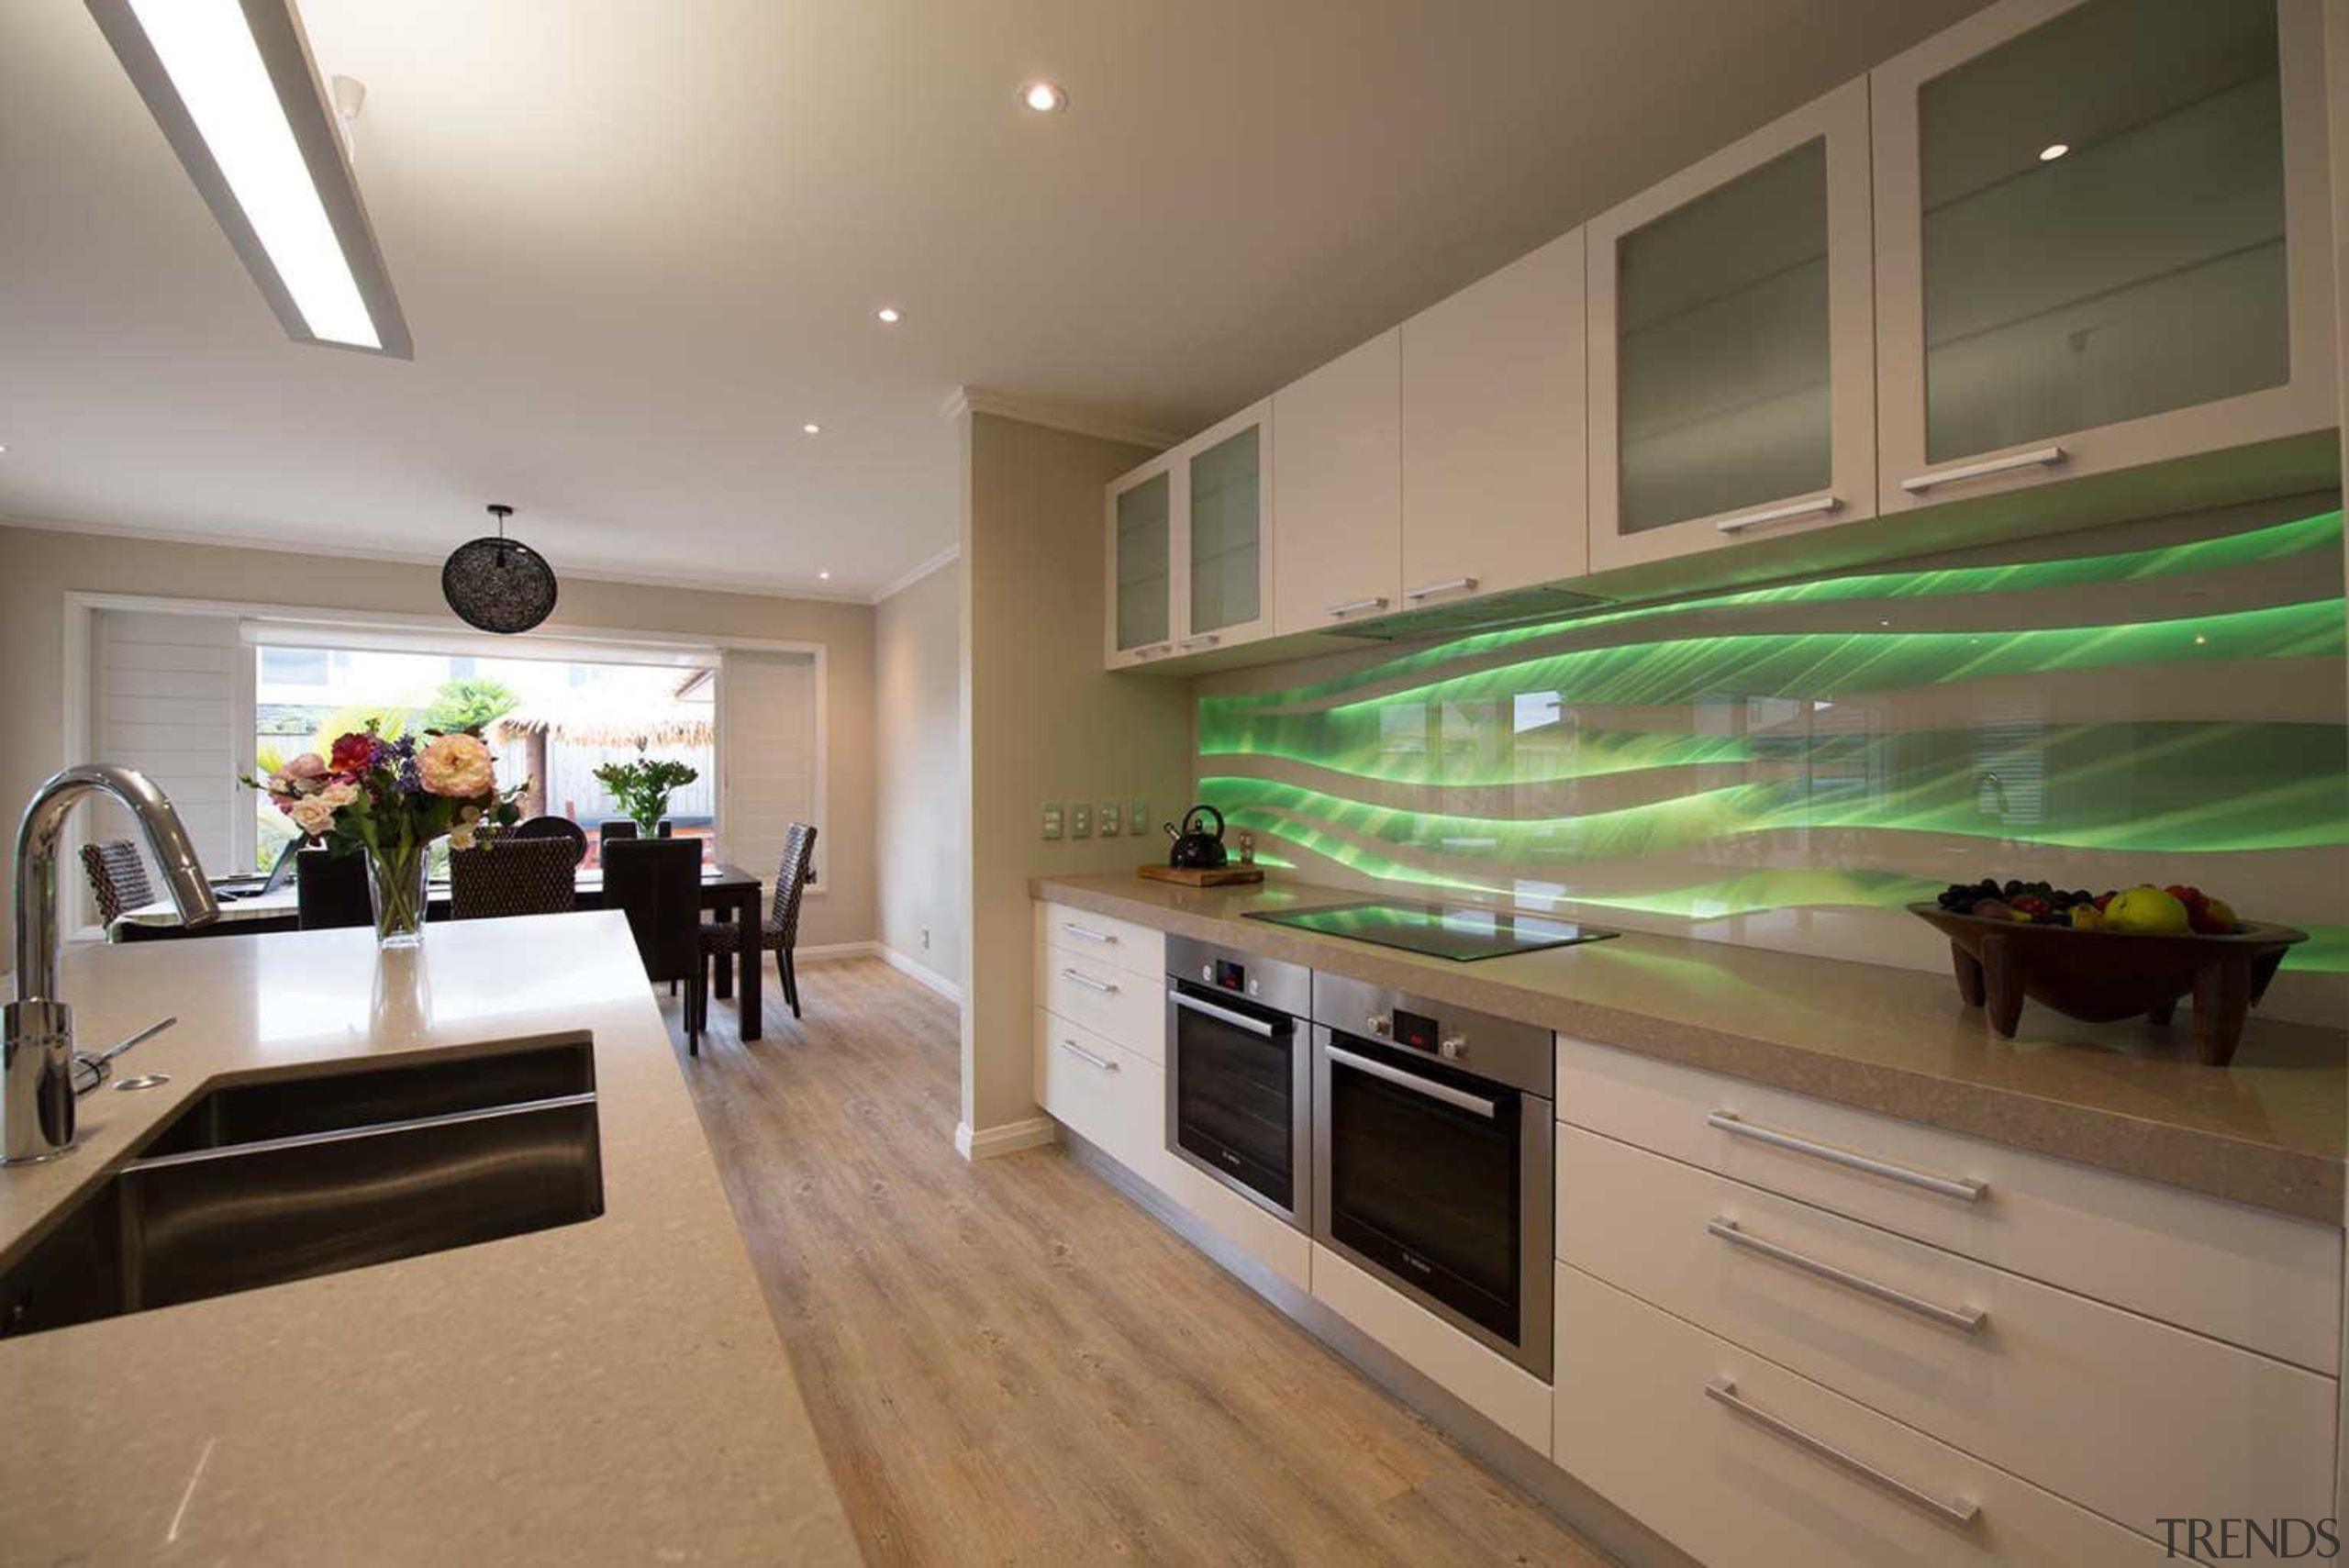 Every kitchen needs a hero and a vibrant ceiling, countertop, interior design, kitchen, real estate, room, brown, gray